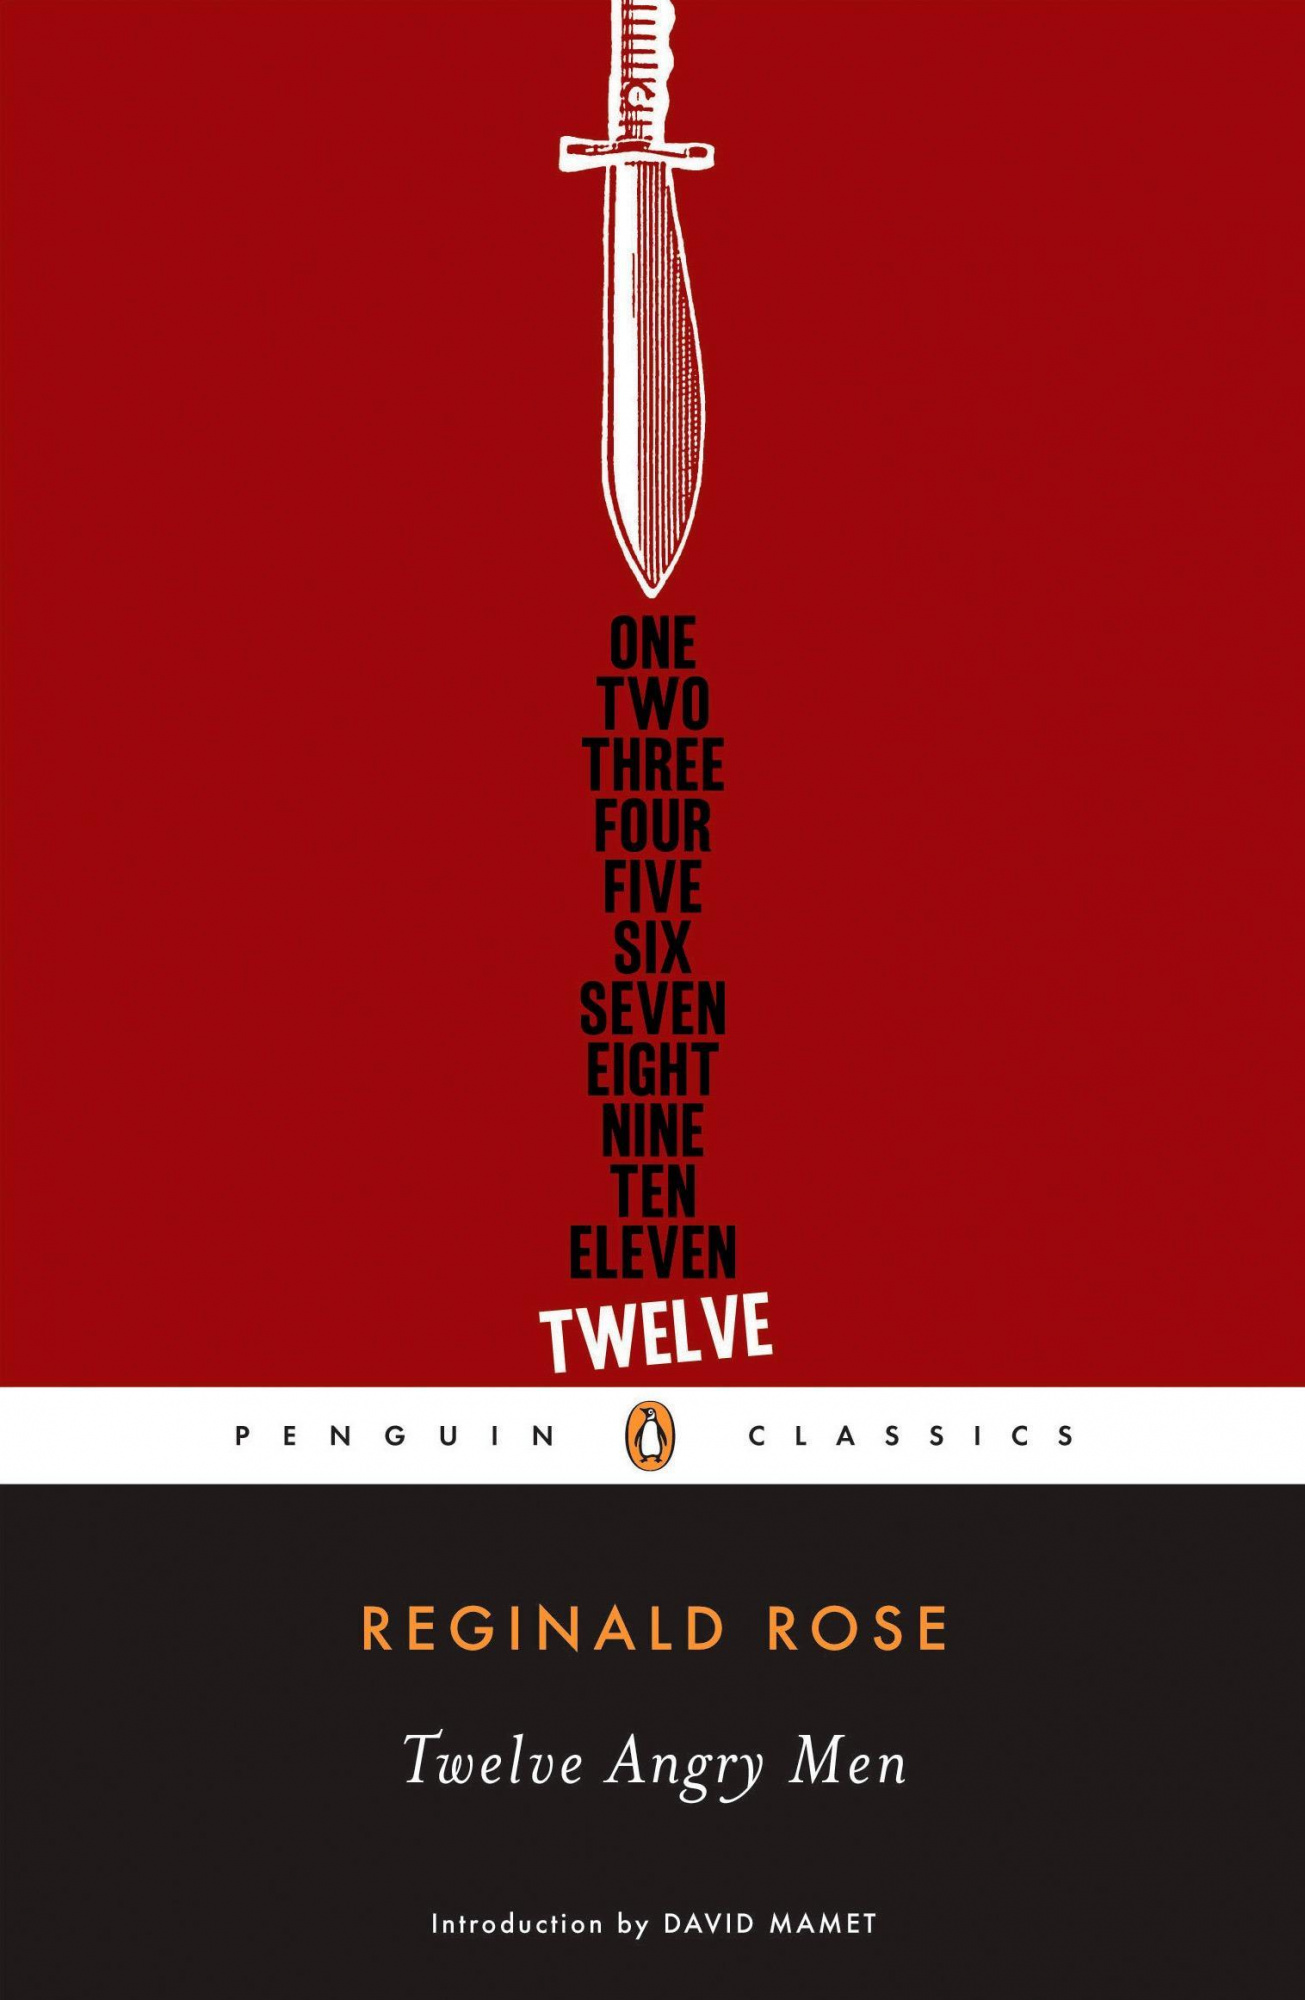 an analysis of reasonable doubt in twelve angry men by reginald rose And approaches the position of being a jury member with a very open mind, of which reginald rose illustrates to be a desirable characteristic especially given the decision that needs to be made in  juror 8 also overcomes the challenge of expressing his reasonable doubt that the accused is guilty to all the other jurors, facing incredible prejudice and bias against what he says we will write a custom essay sample on conflict twelve angry men or any similar topic specifically for you.